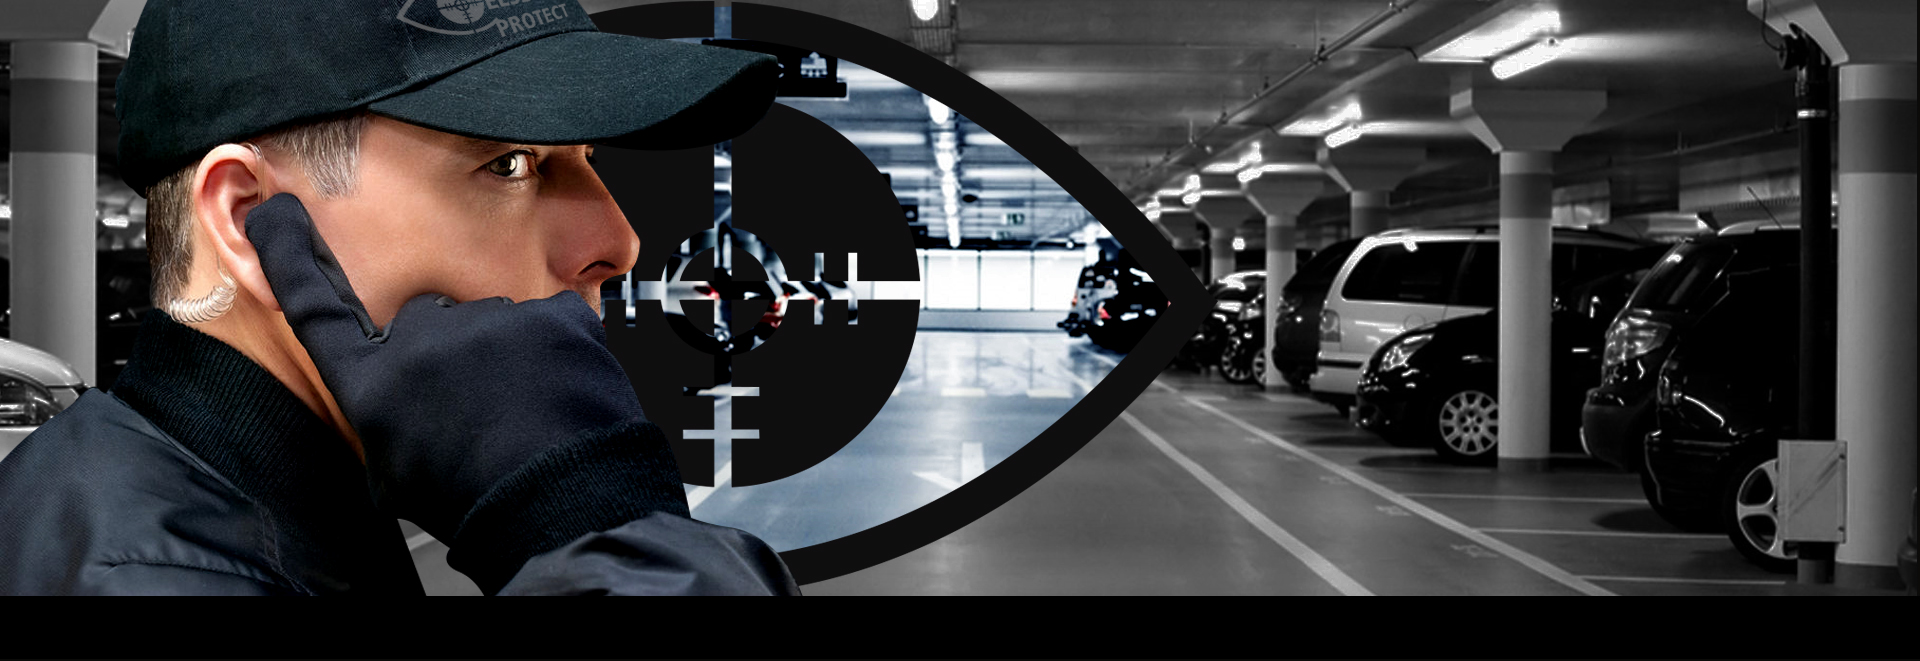 elseprotect-surveillance-industrielle-parking